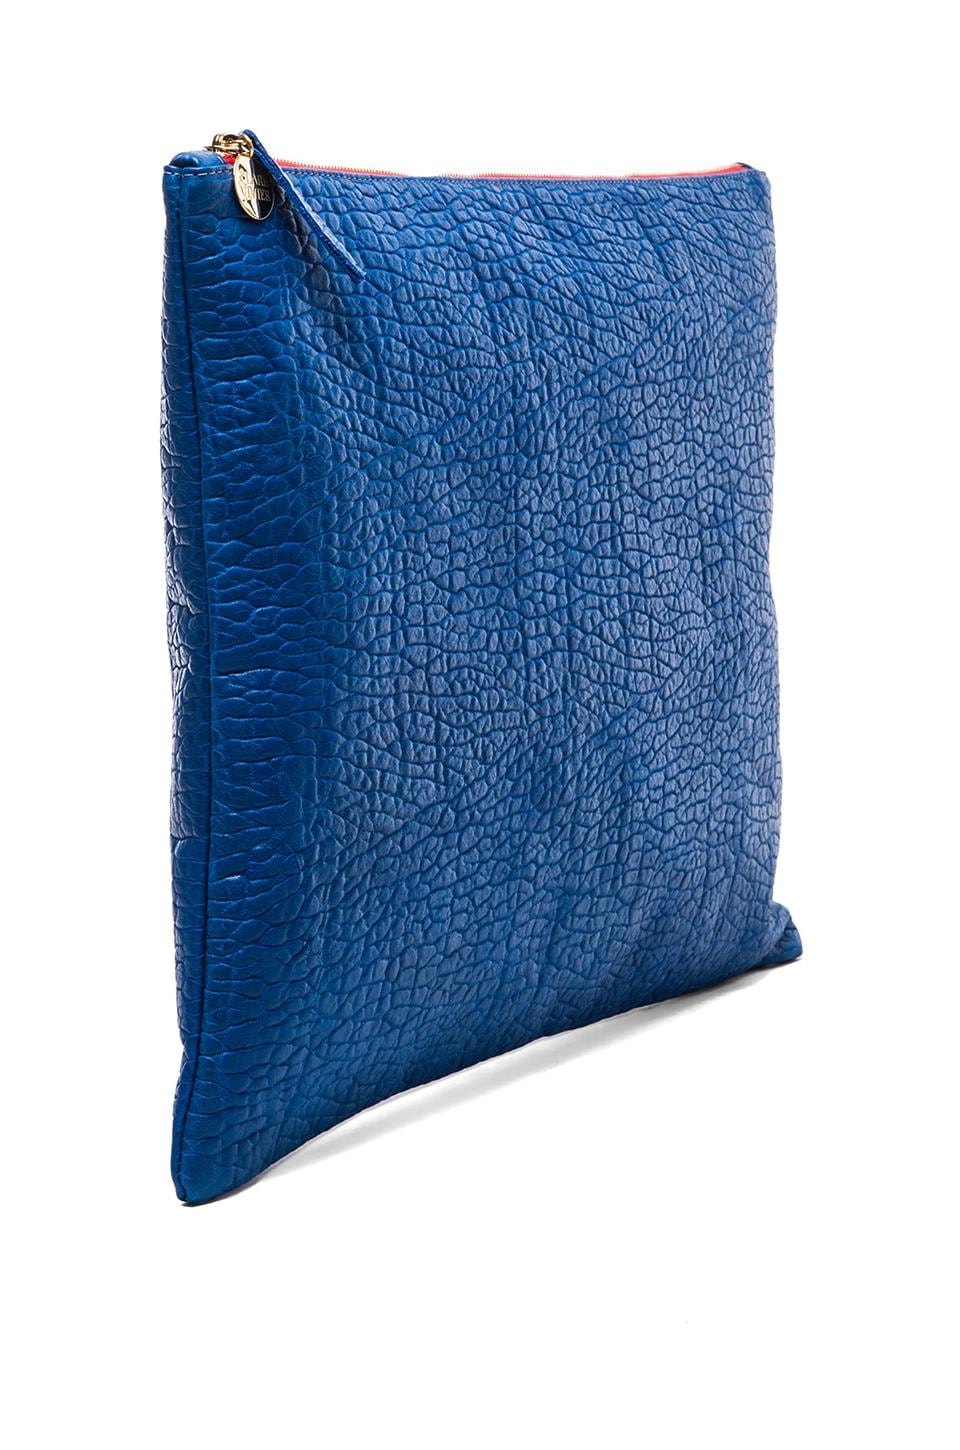 Clare V. Oversized Laptop Clutch in Royal Blue Pebble